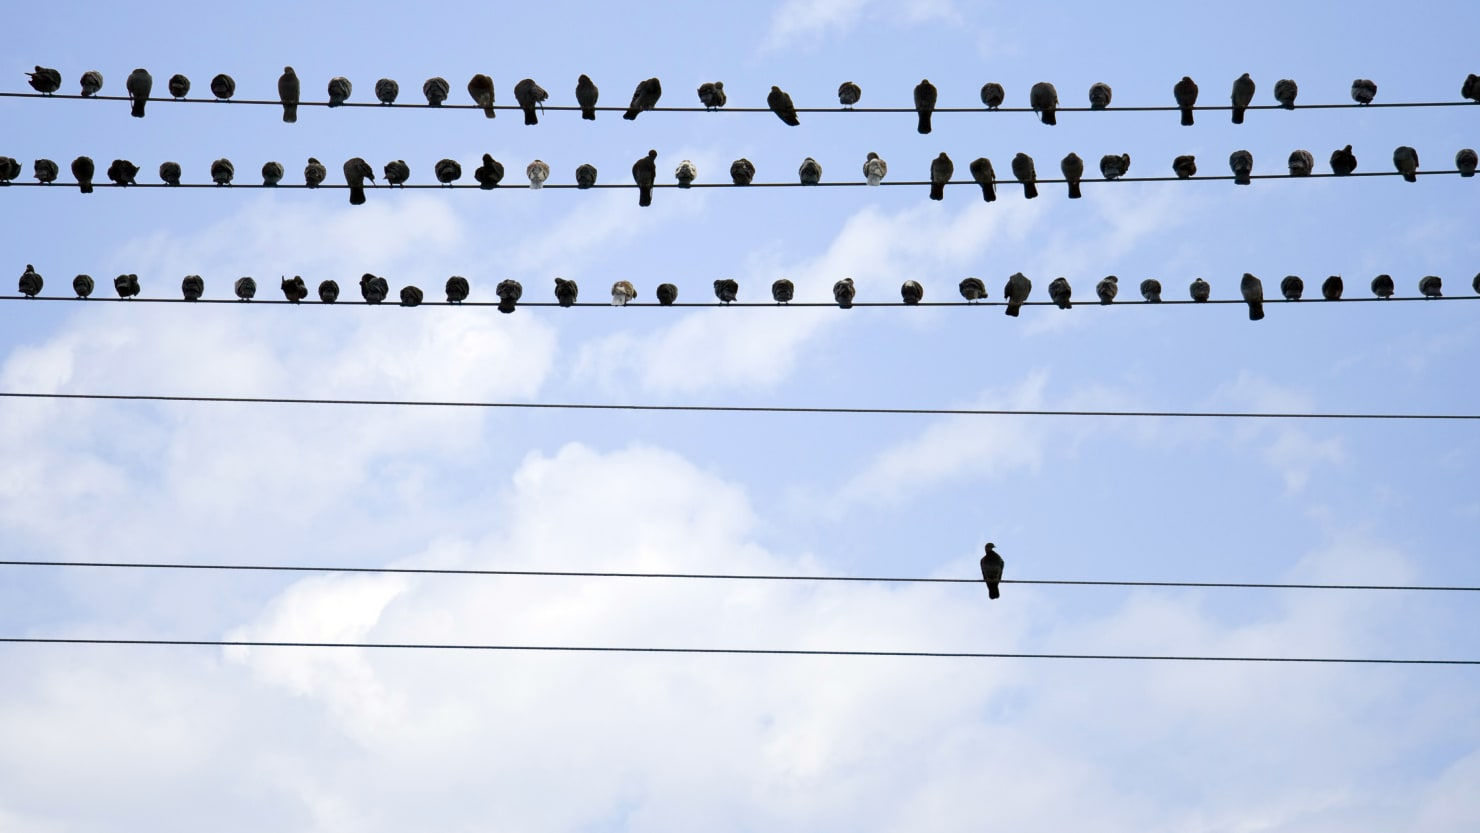 birds on a wire loneliness isolation mental health illness depression